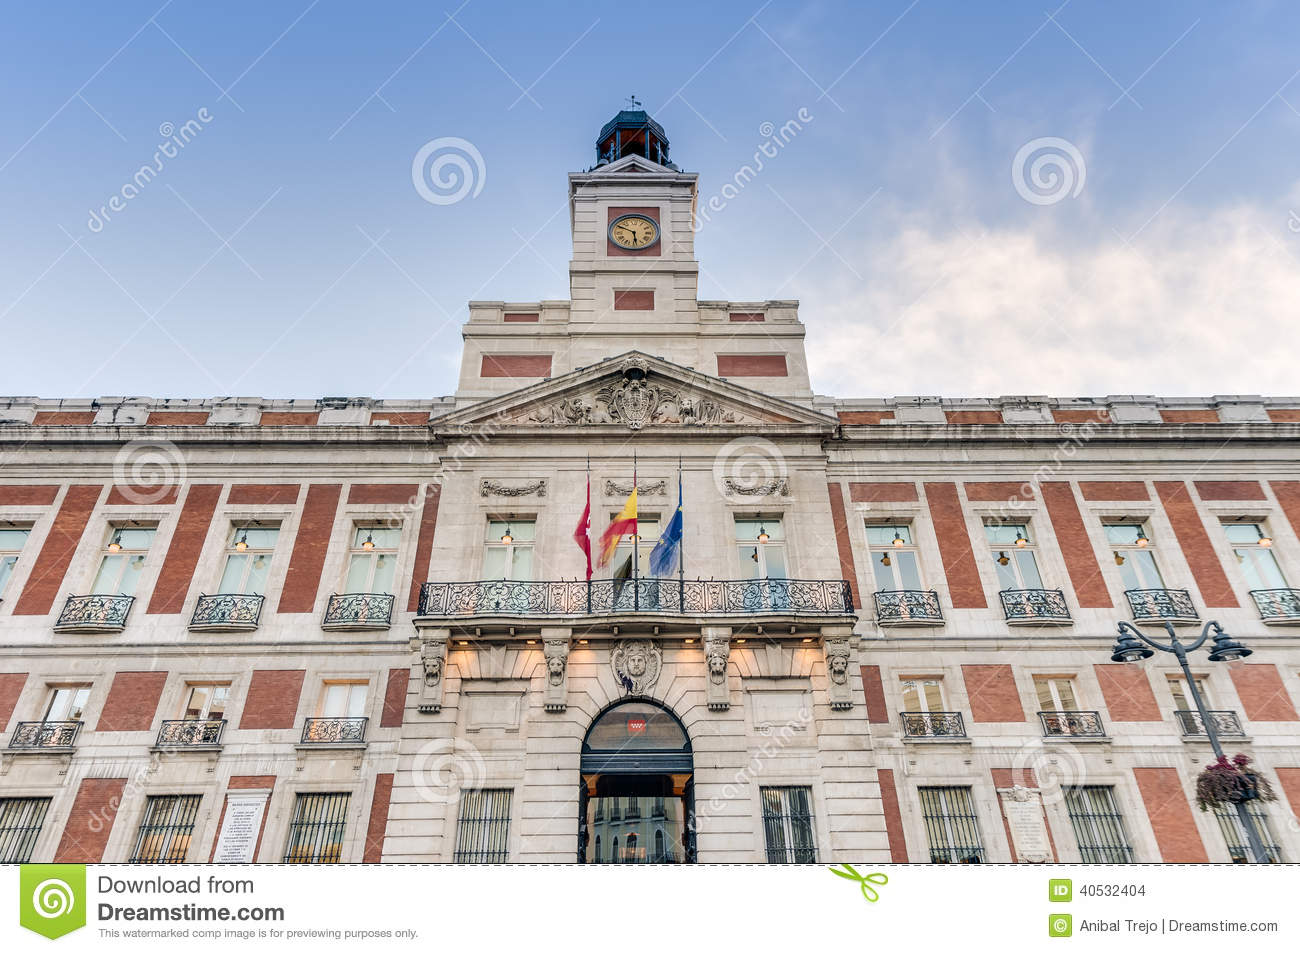 Real casa de correos building in madrid spain stock for Comer en puerta del sol